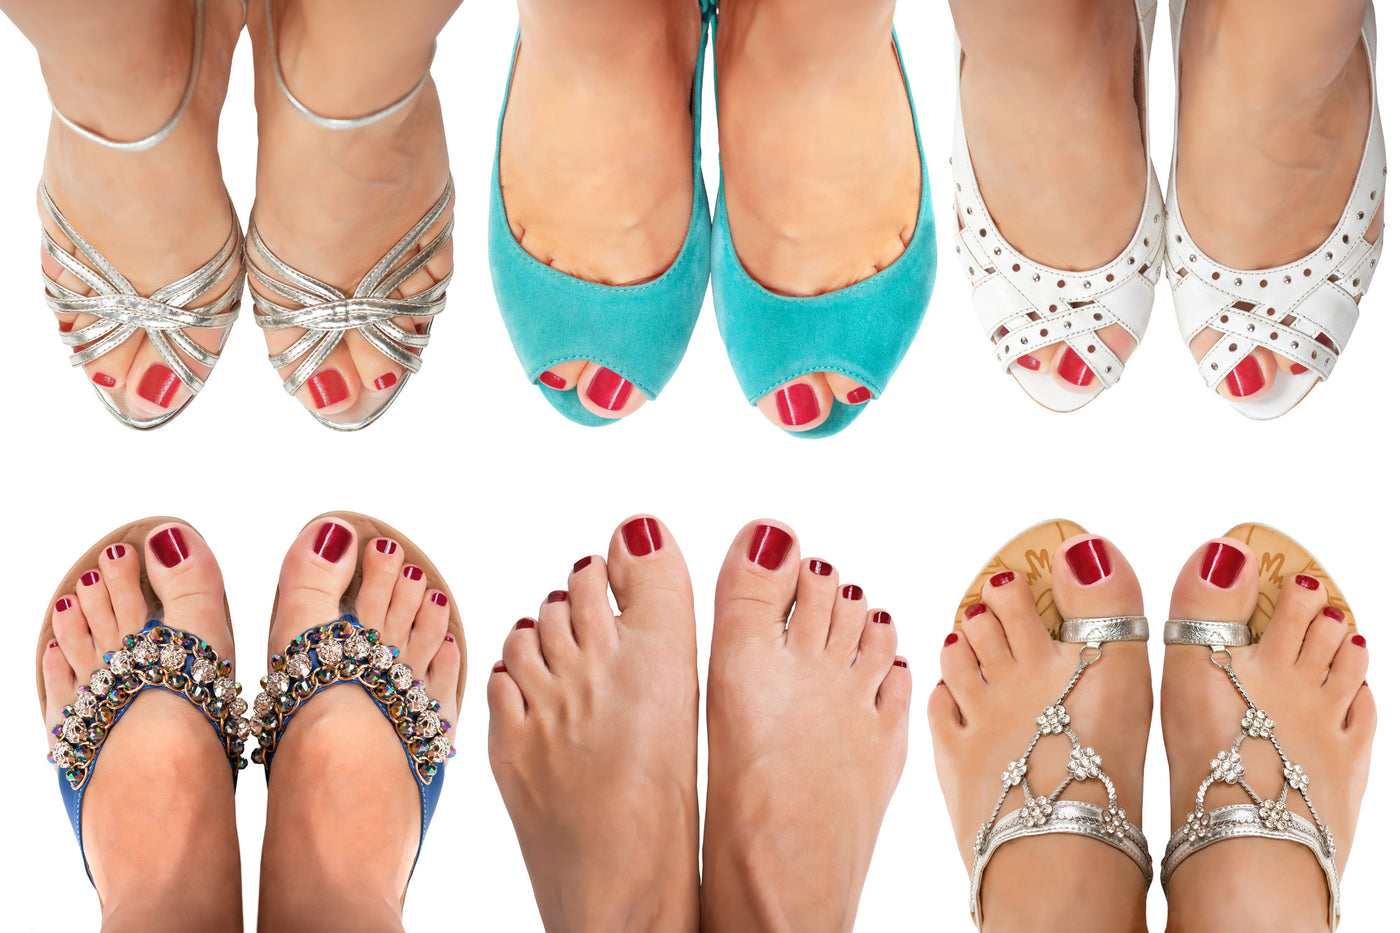 f701d0a563b3 How to Choose The Best Sandals for Flat Feet (And Look Awesome ...